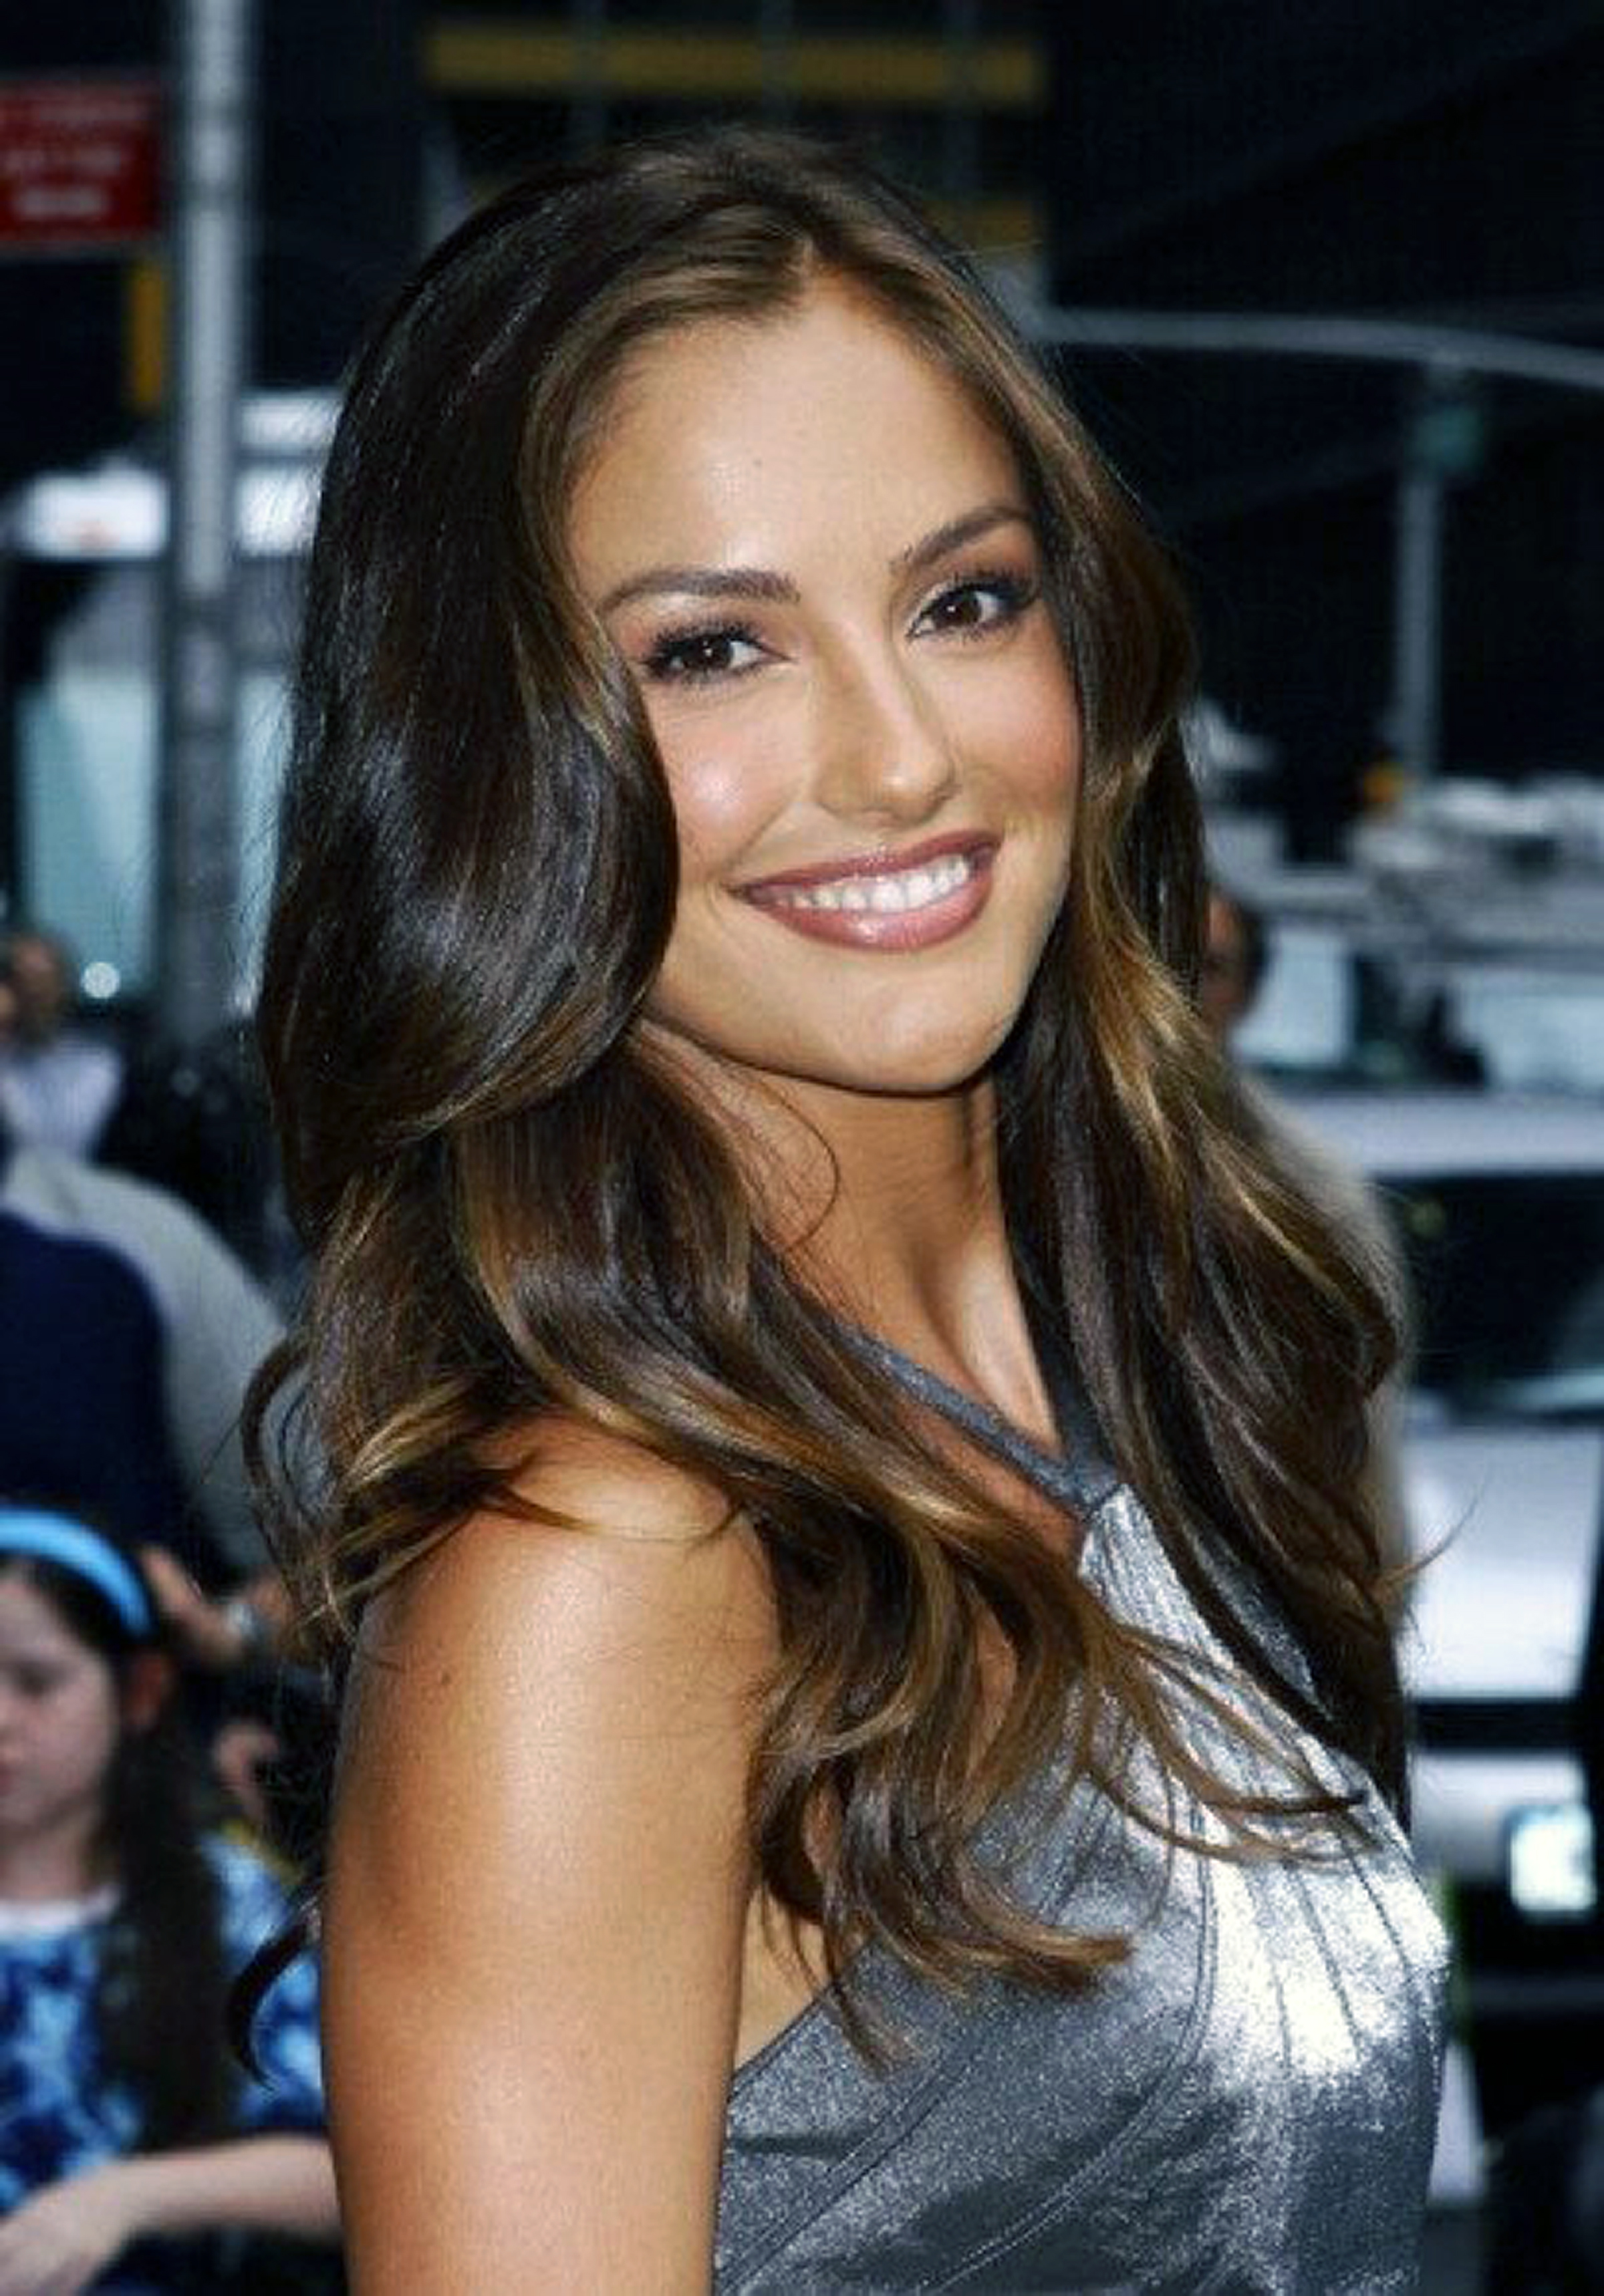 Minka Kelly nude (25 images), Cleavage